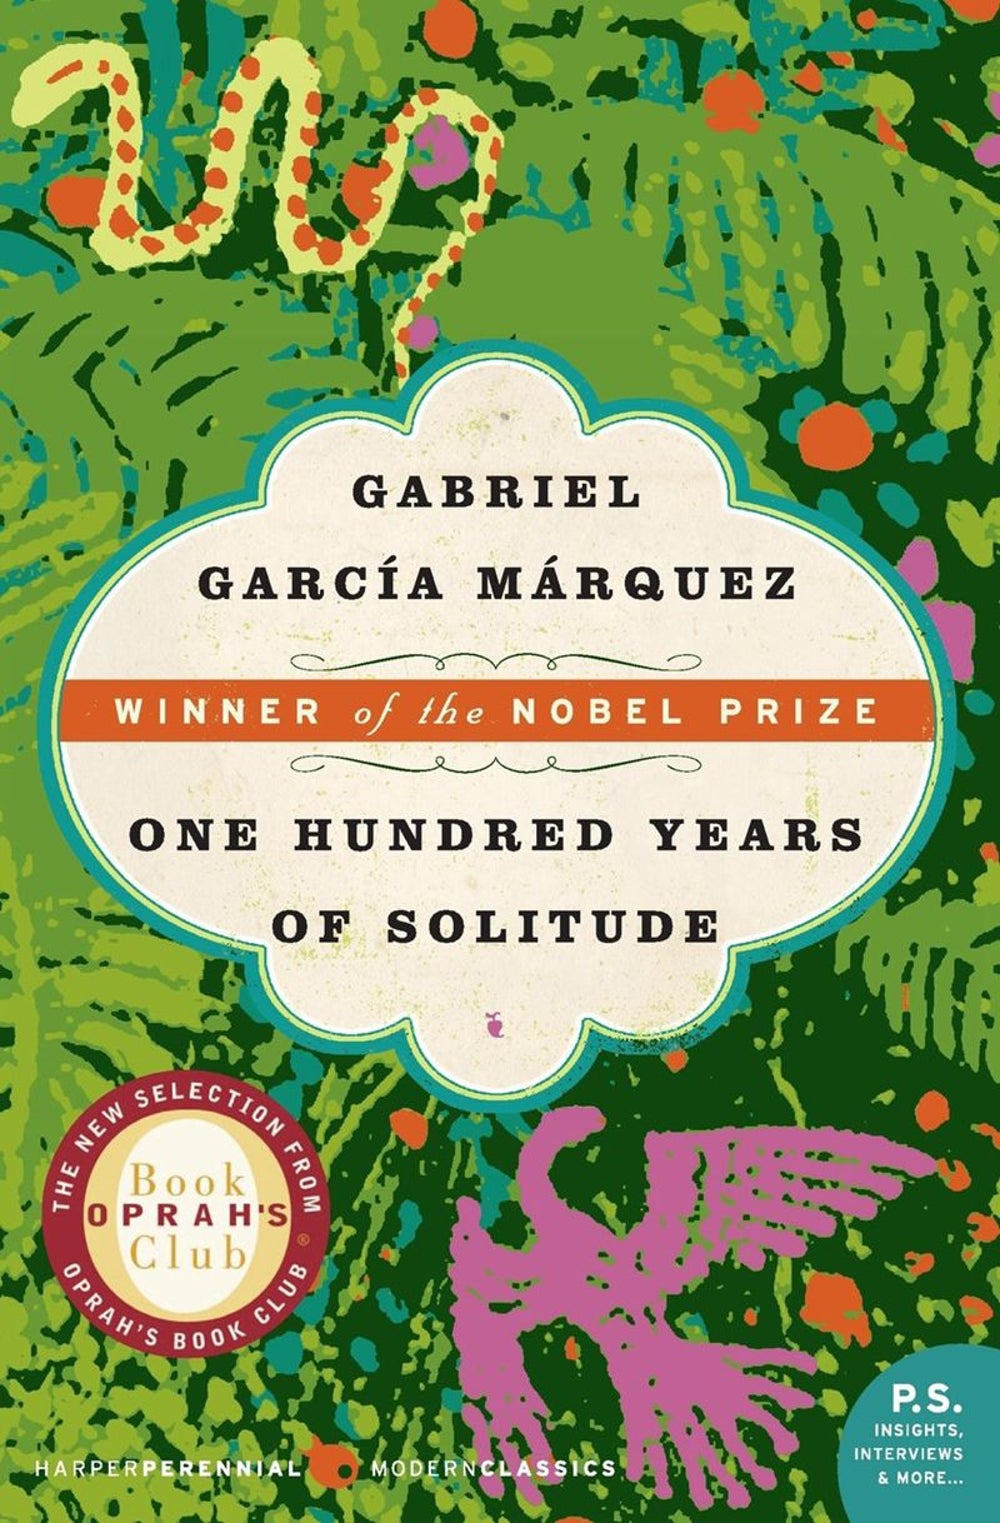 Associate Editor, Contributed Content Matthew McCreary -- 'One Hundred Years of Solitude' by Gabriel Garcia Márquez